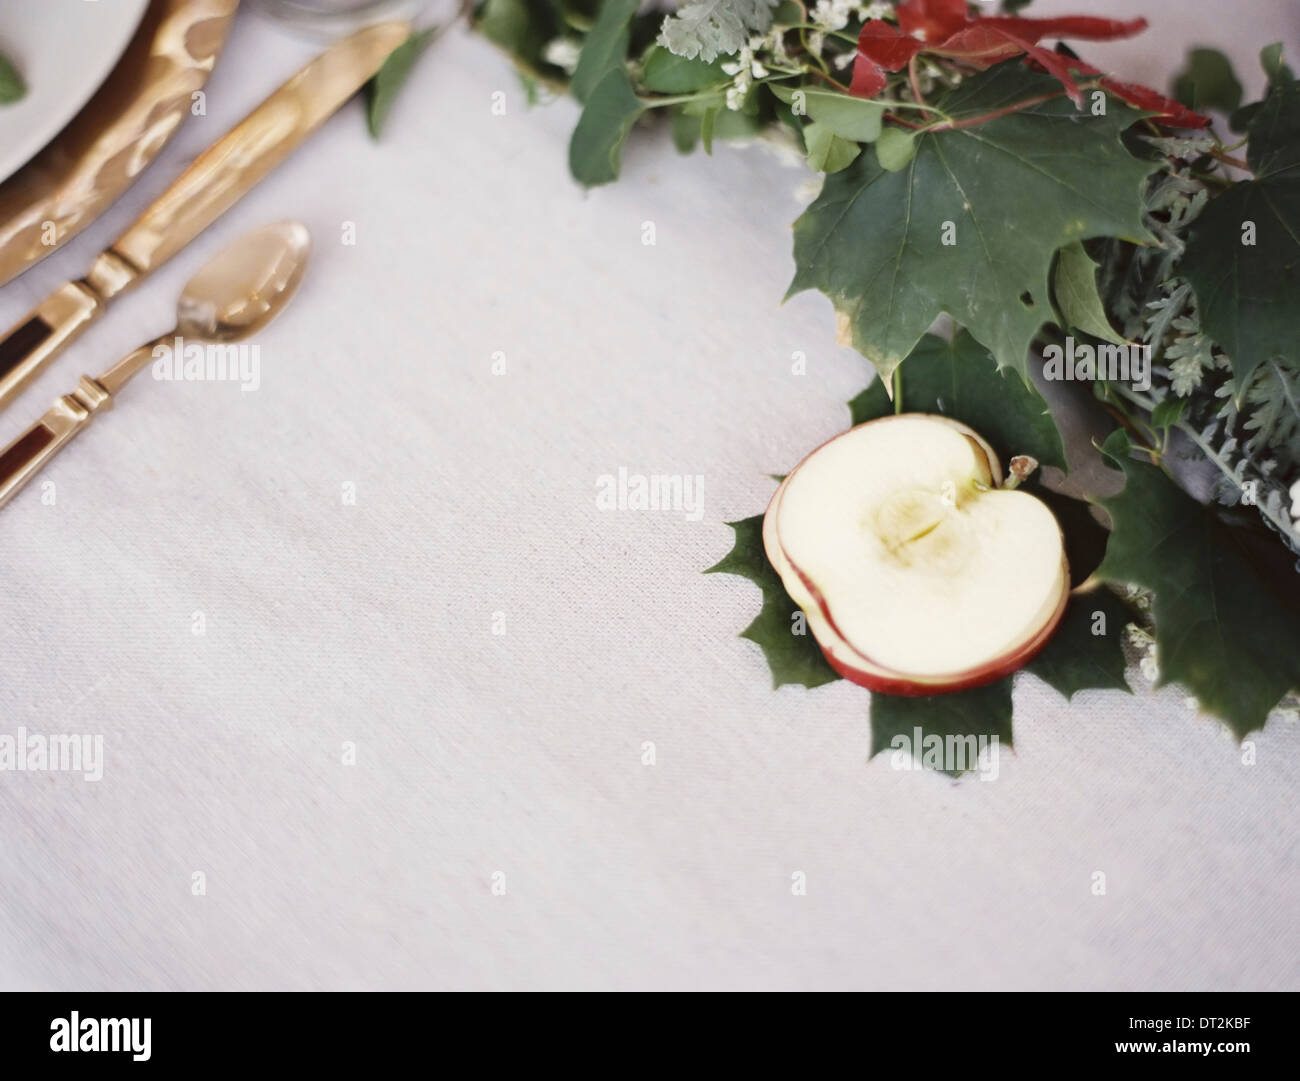 A table top white cloth A place setting with cutlery and plate An apple cut in half and green foliage table decoration - Stock Image